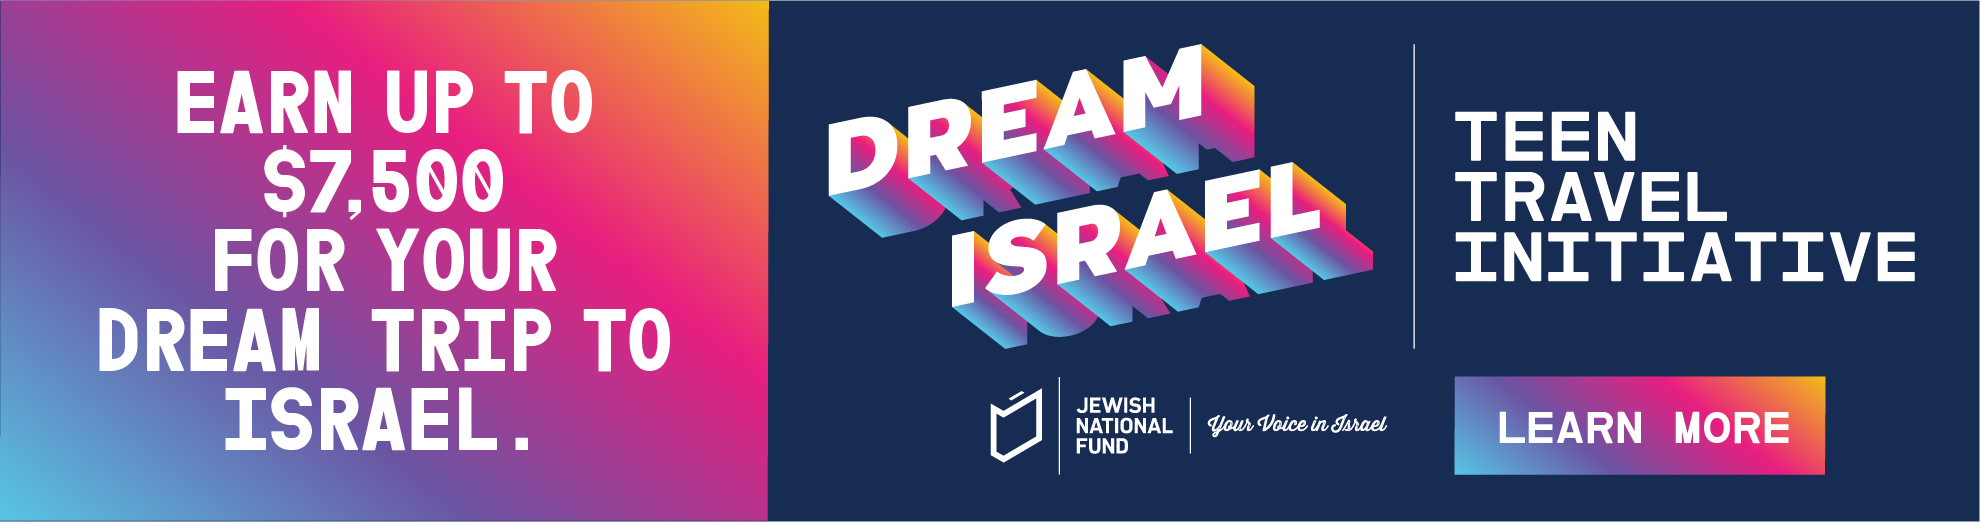 Banners_Dream Israel_950x250